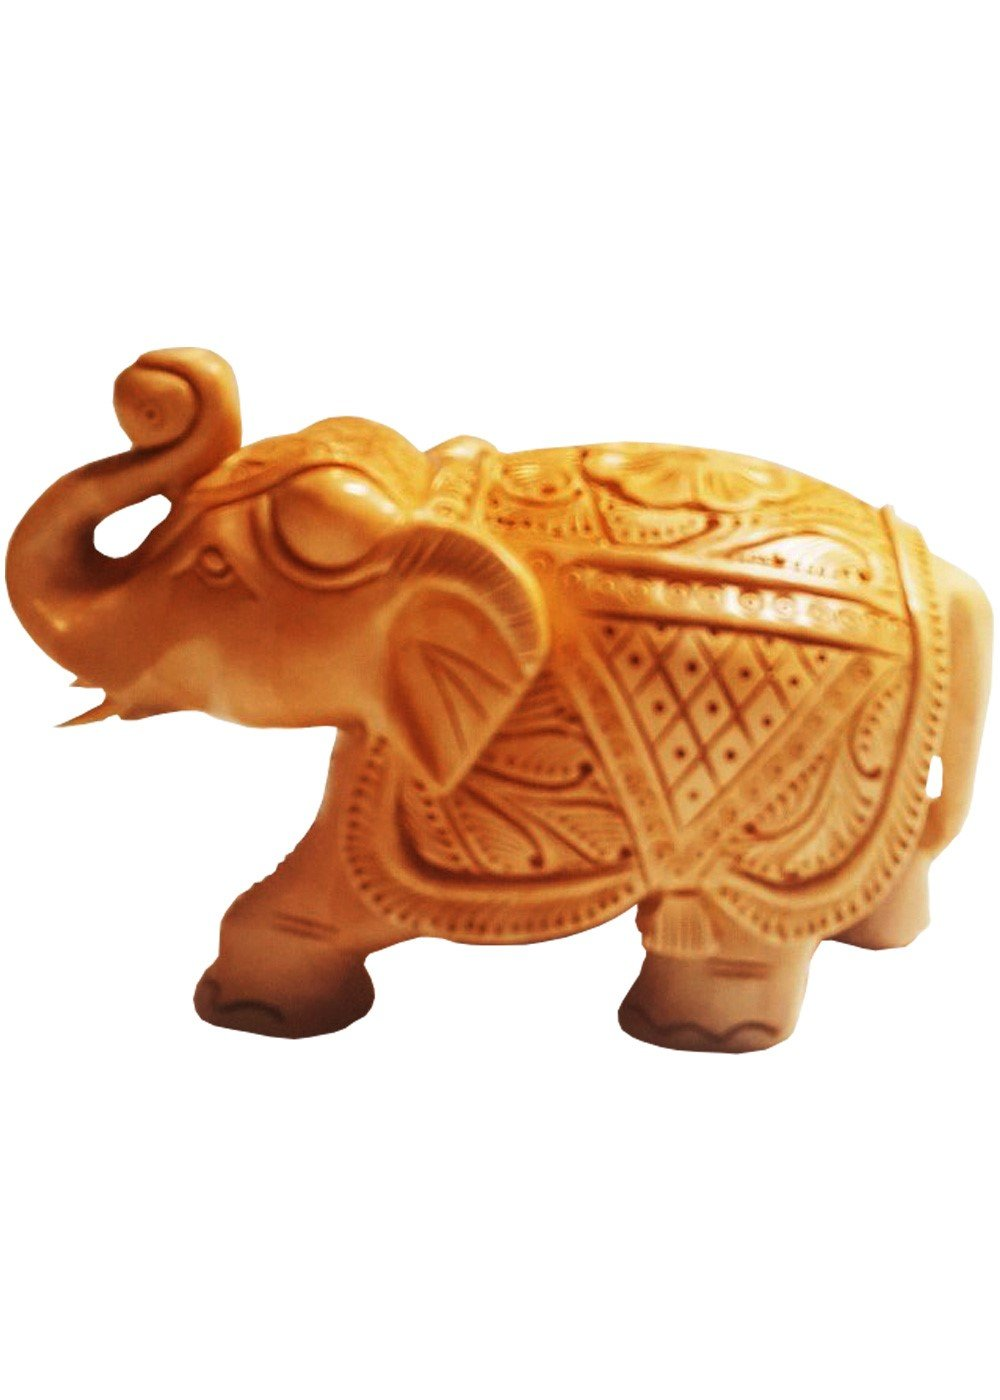 Wooden Handcarved Elephant 3 inches